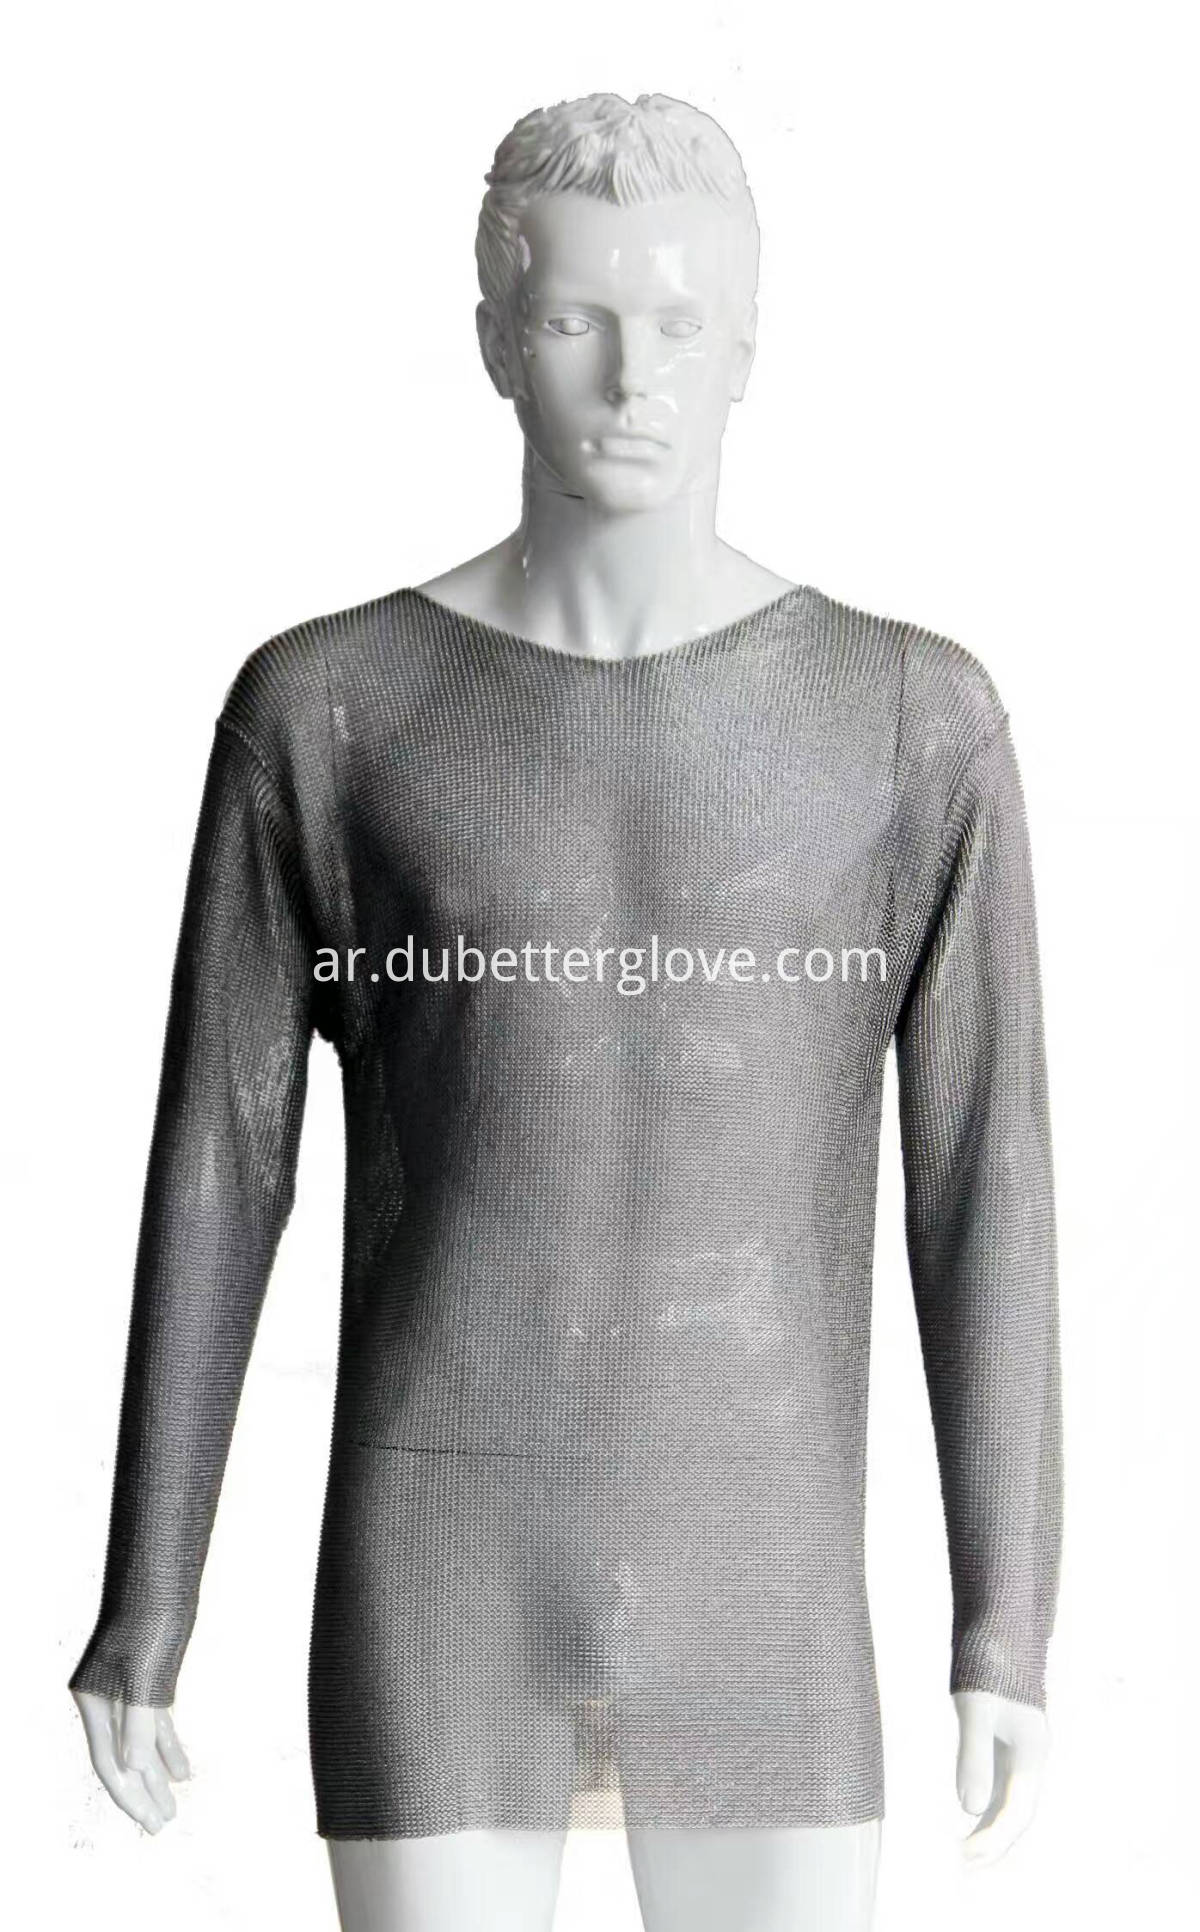 Dubetter STEEL MESH PROTECTIVE CLOTHING